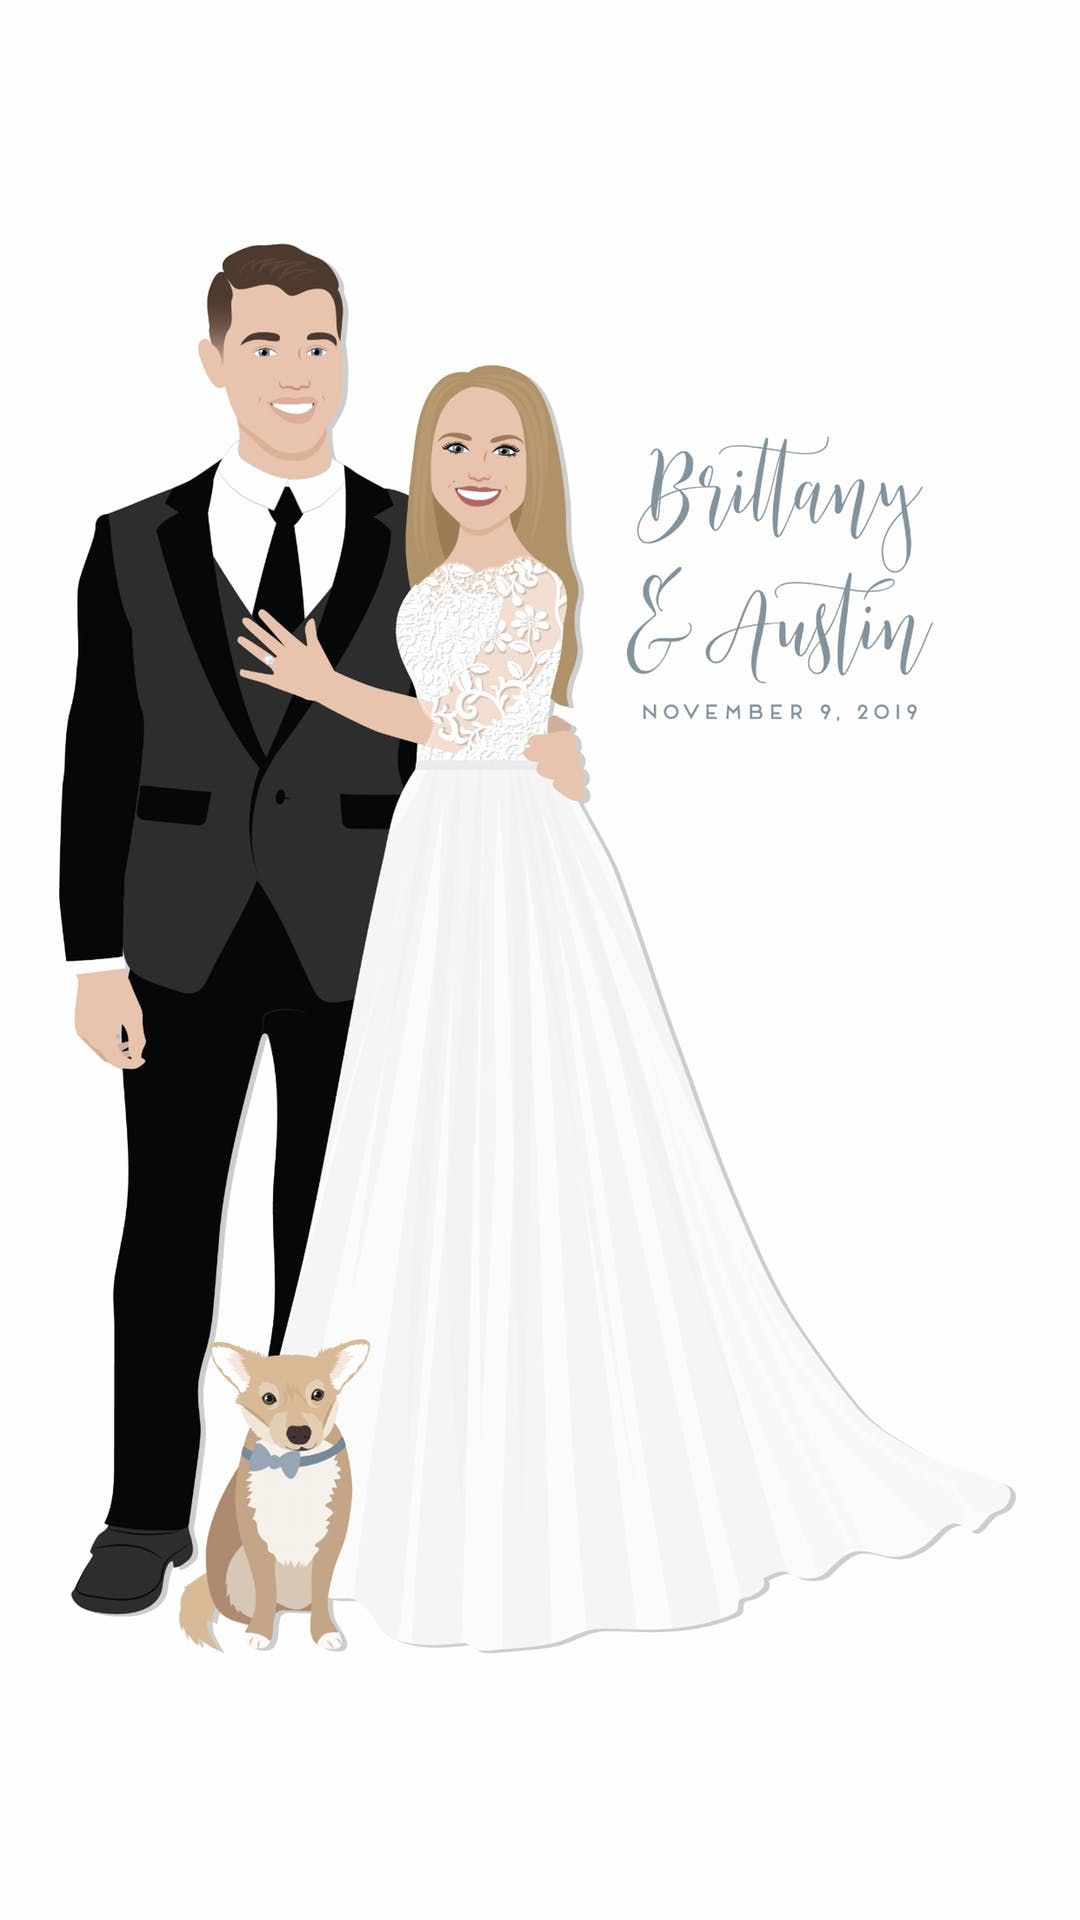 Wedding Guest Book Alternative With Couple Portrait The Penny Wedding Attire Guest Wedding Guest Book Wedding Guest Book Alternatives [ 1920 x 1080 Pixel ]